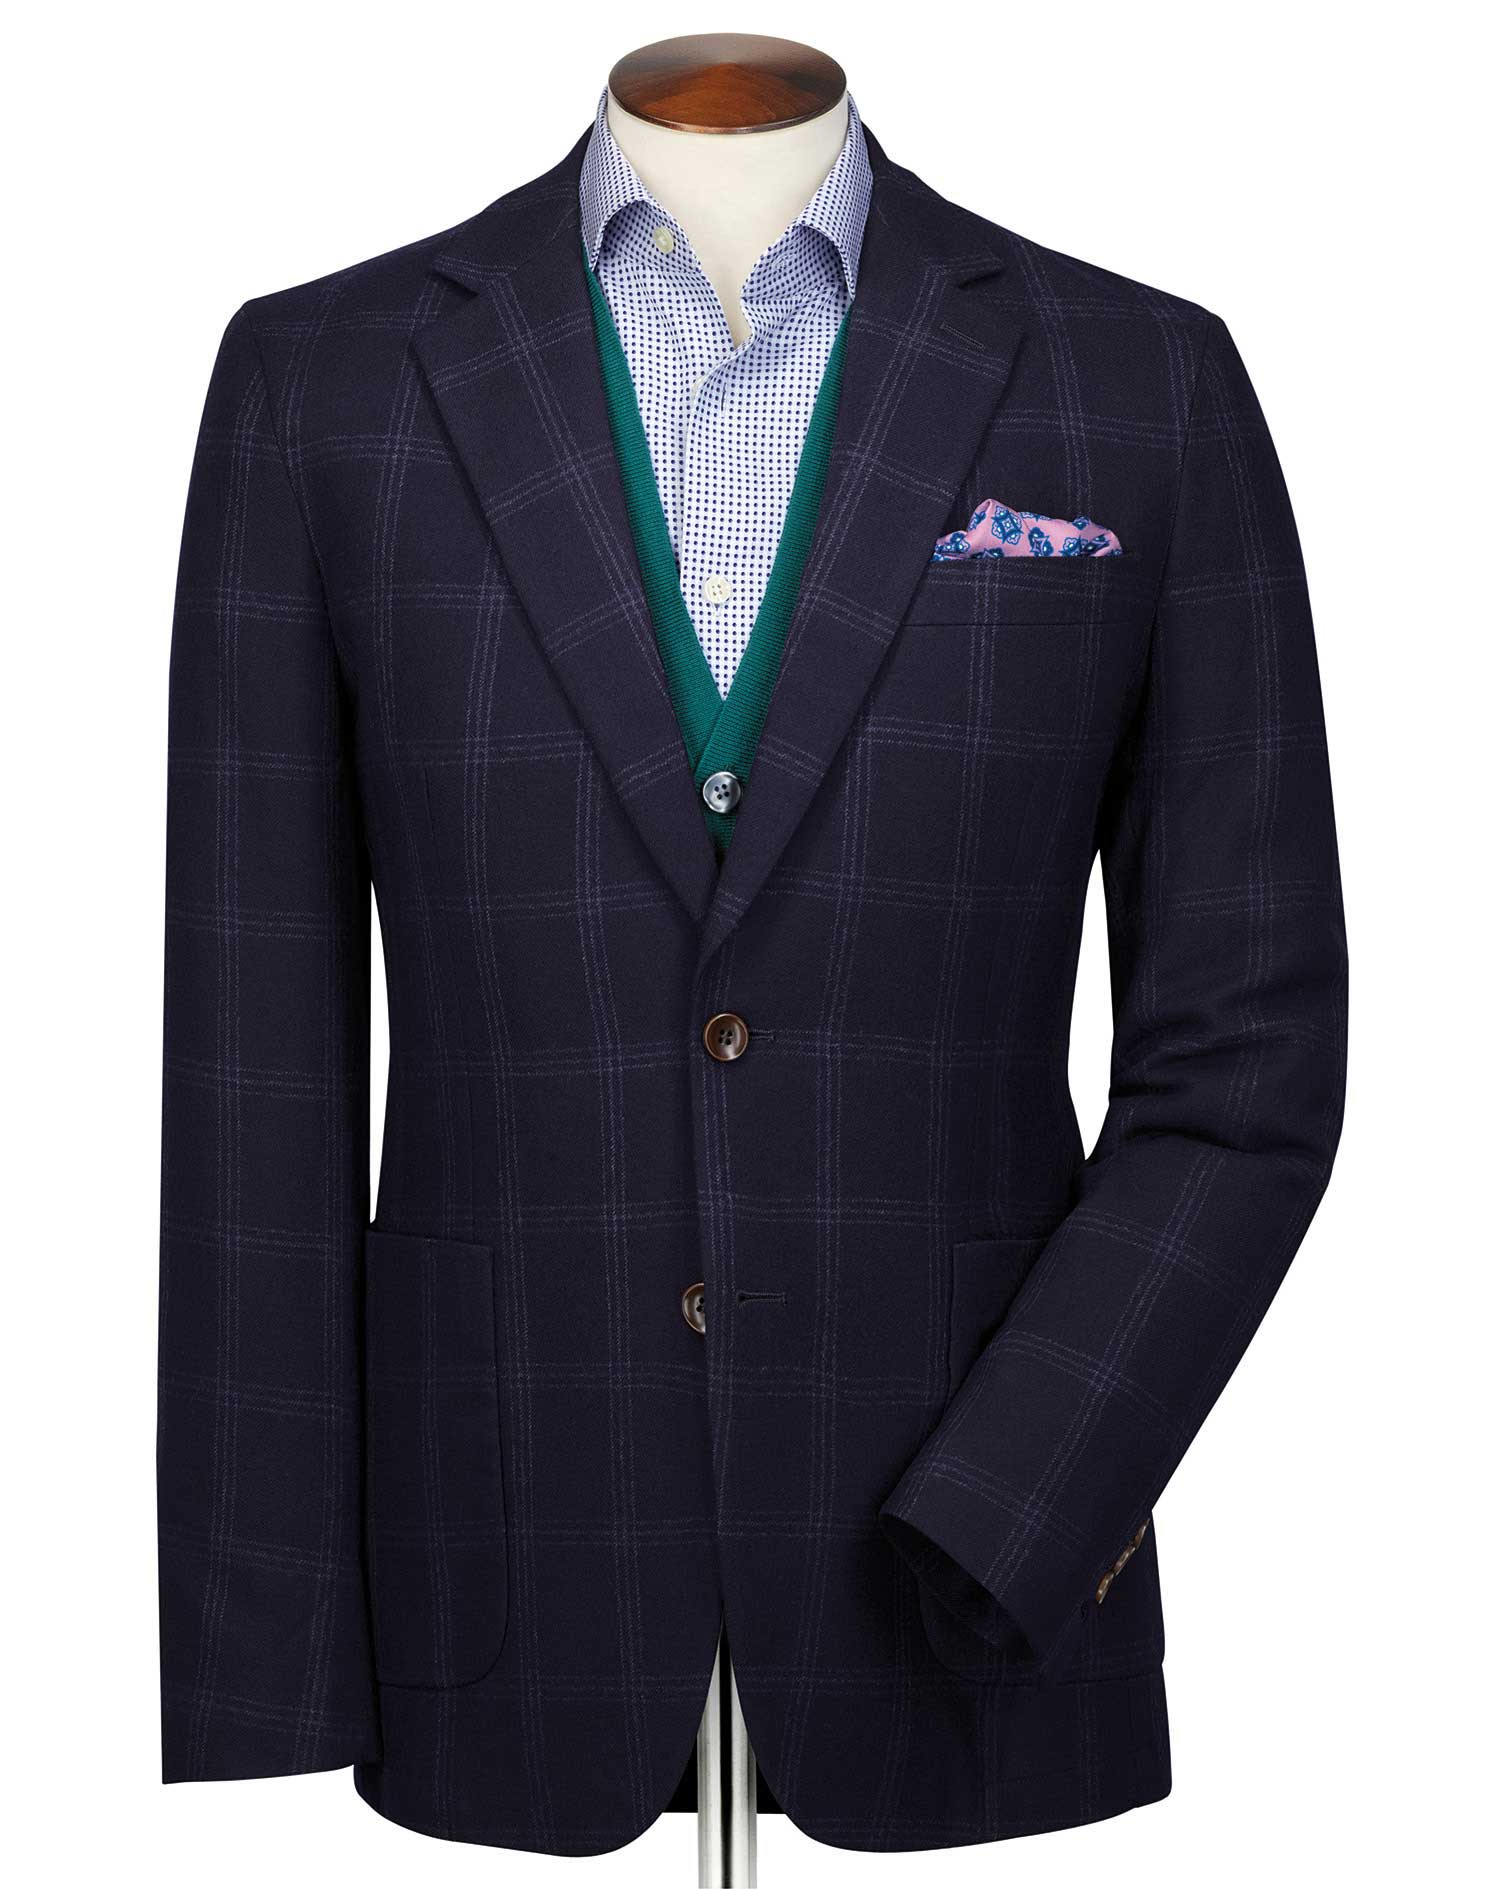 Slim Fit Navy and Blue Checkered Wool Flannel Wool Blazer Size 44 Regular by Charles Tyrwhitt